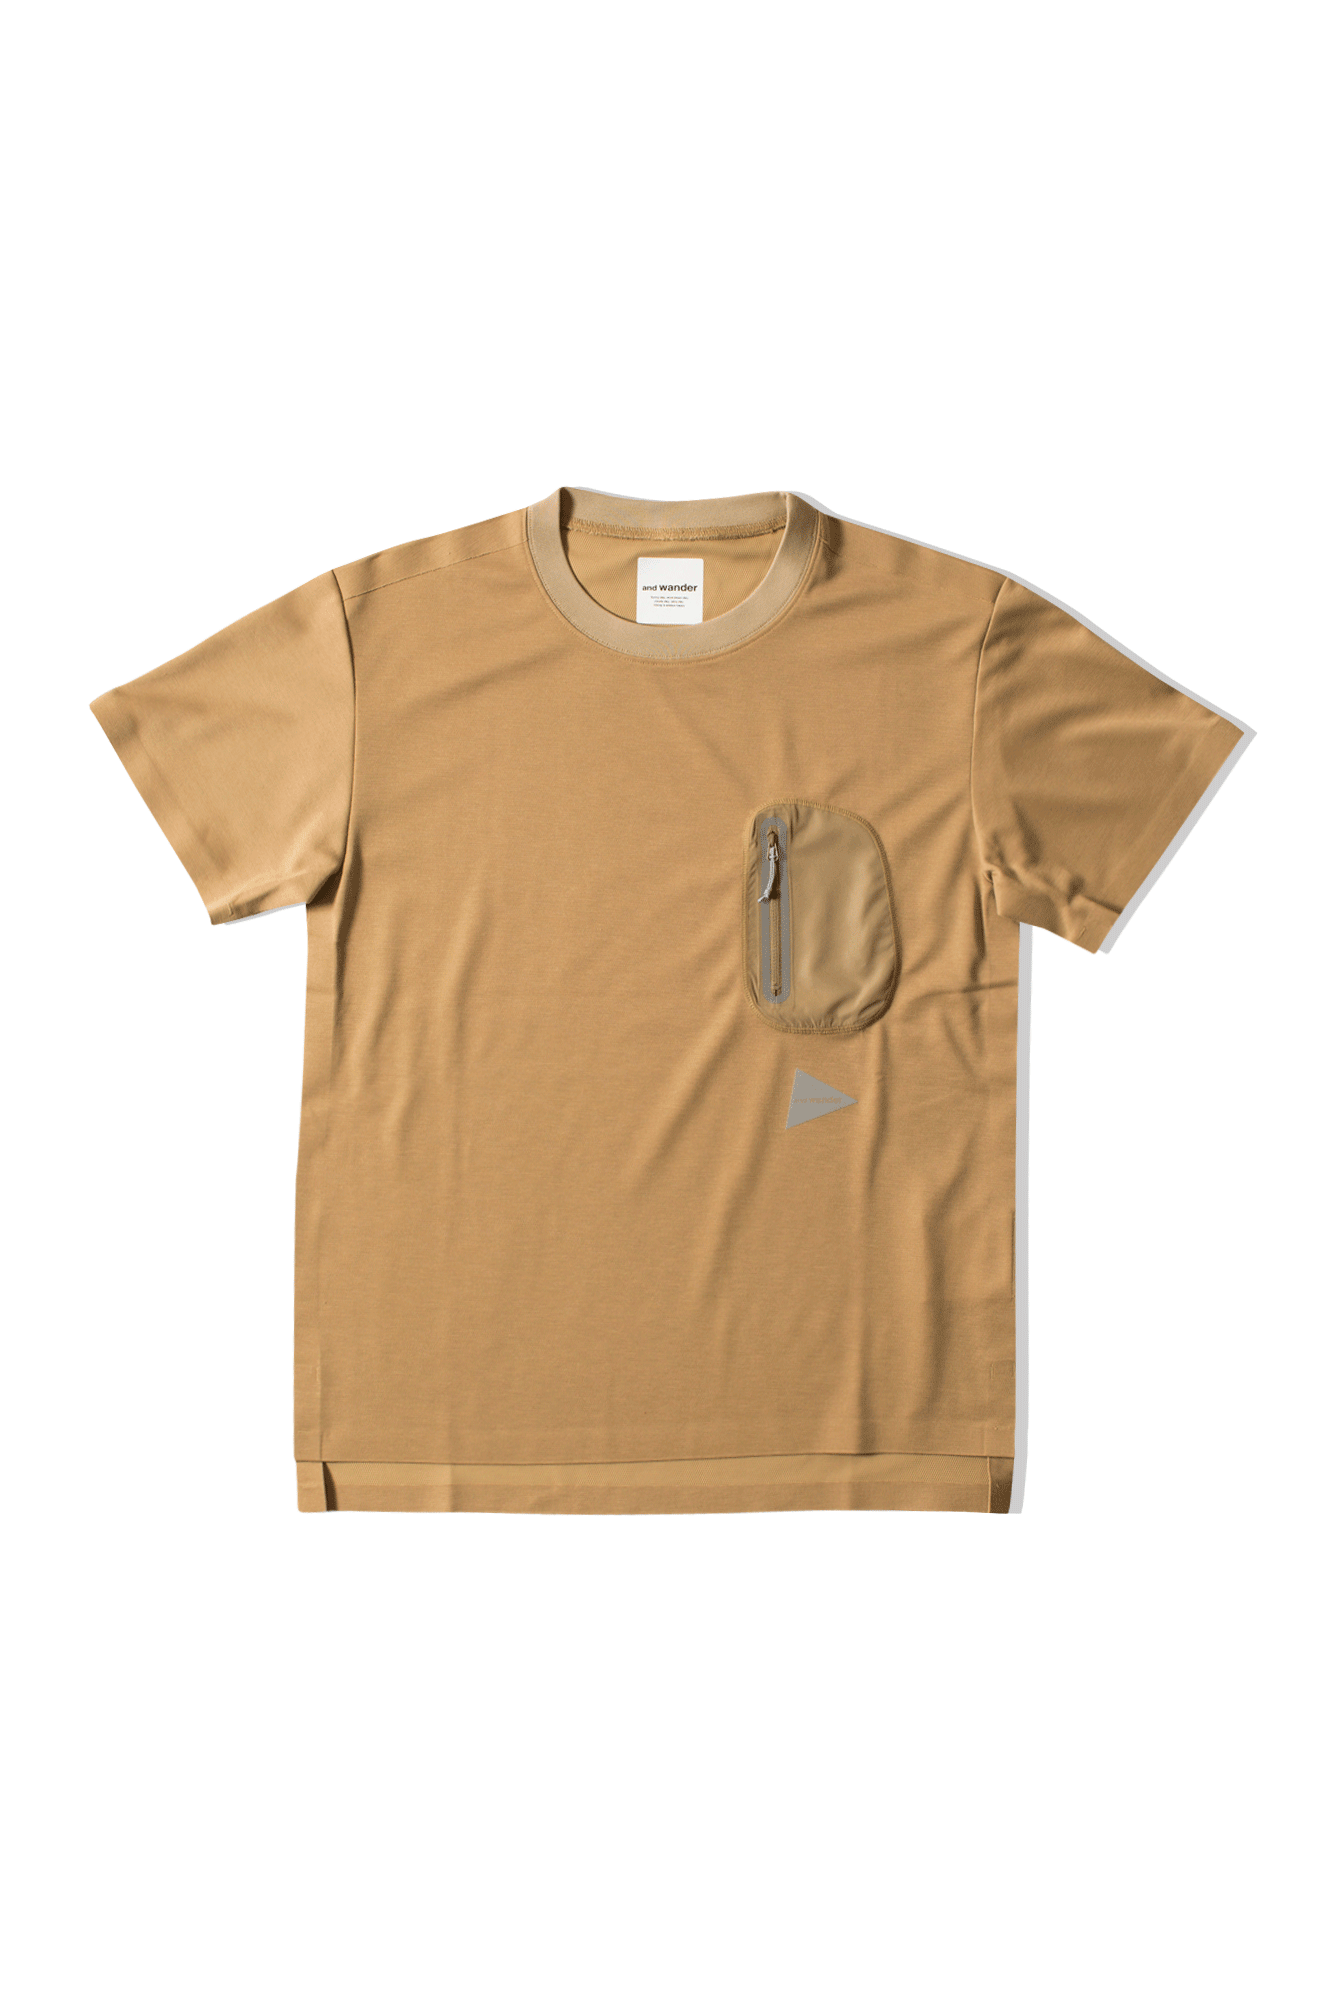 And Wander T-Shirts Seamless Tee Neutrals AW91-JT628#000#BEIGE#0 - One Block Down